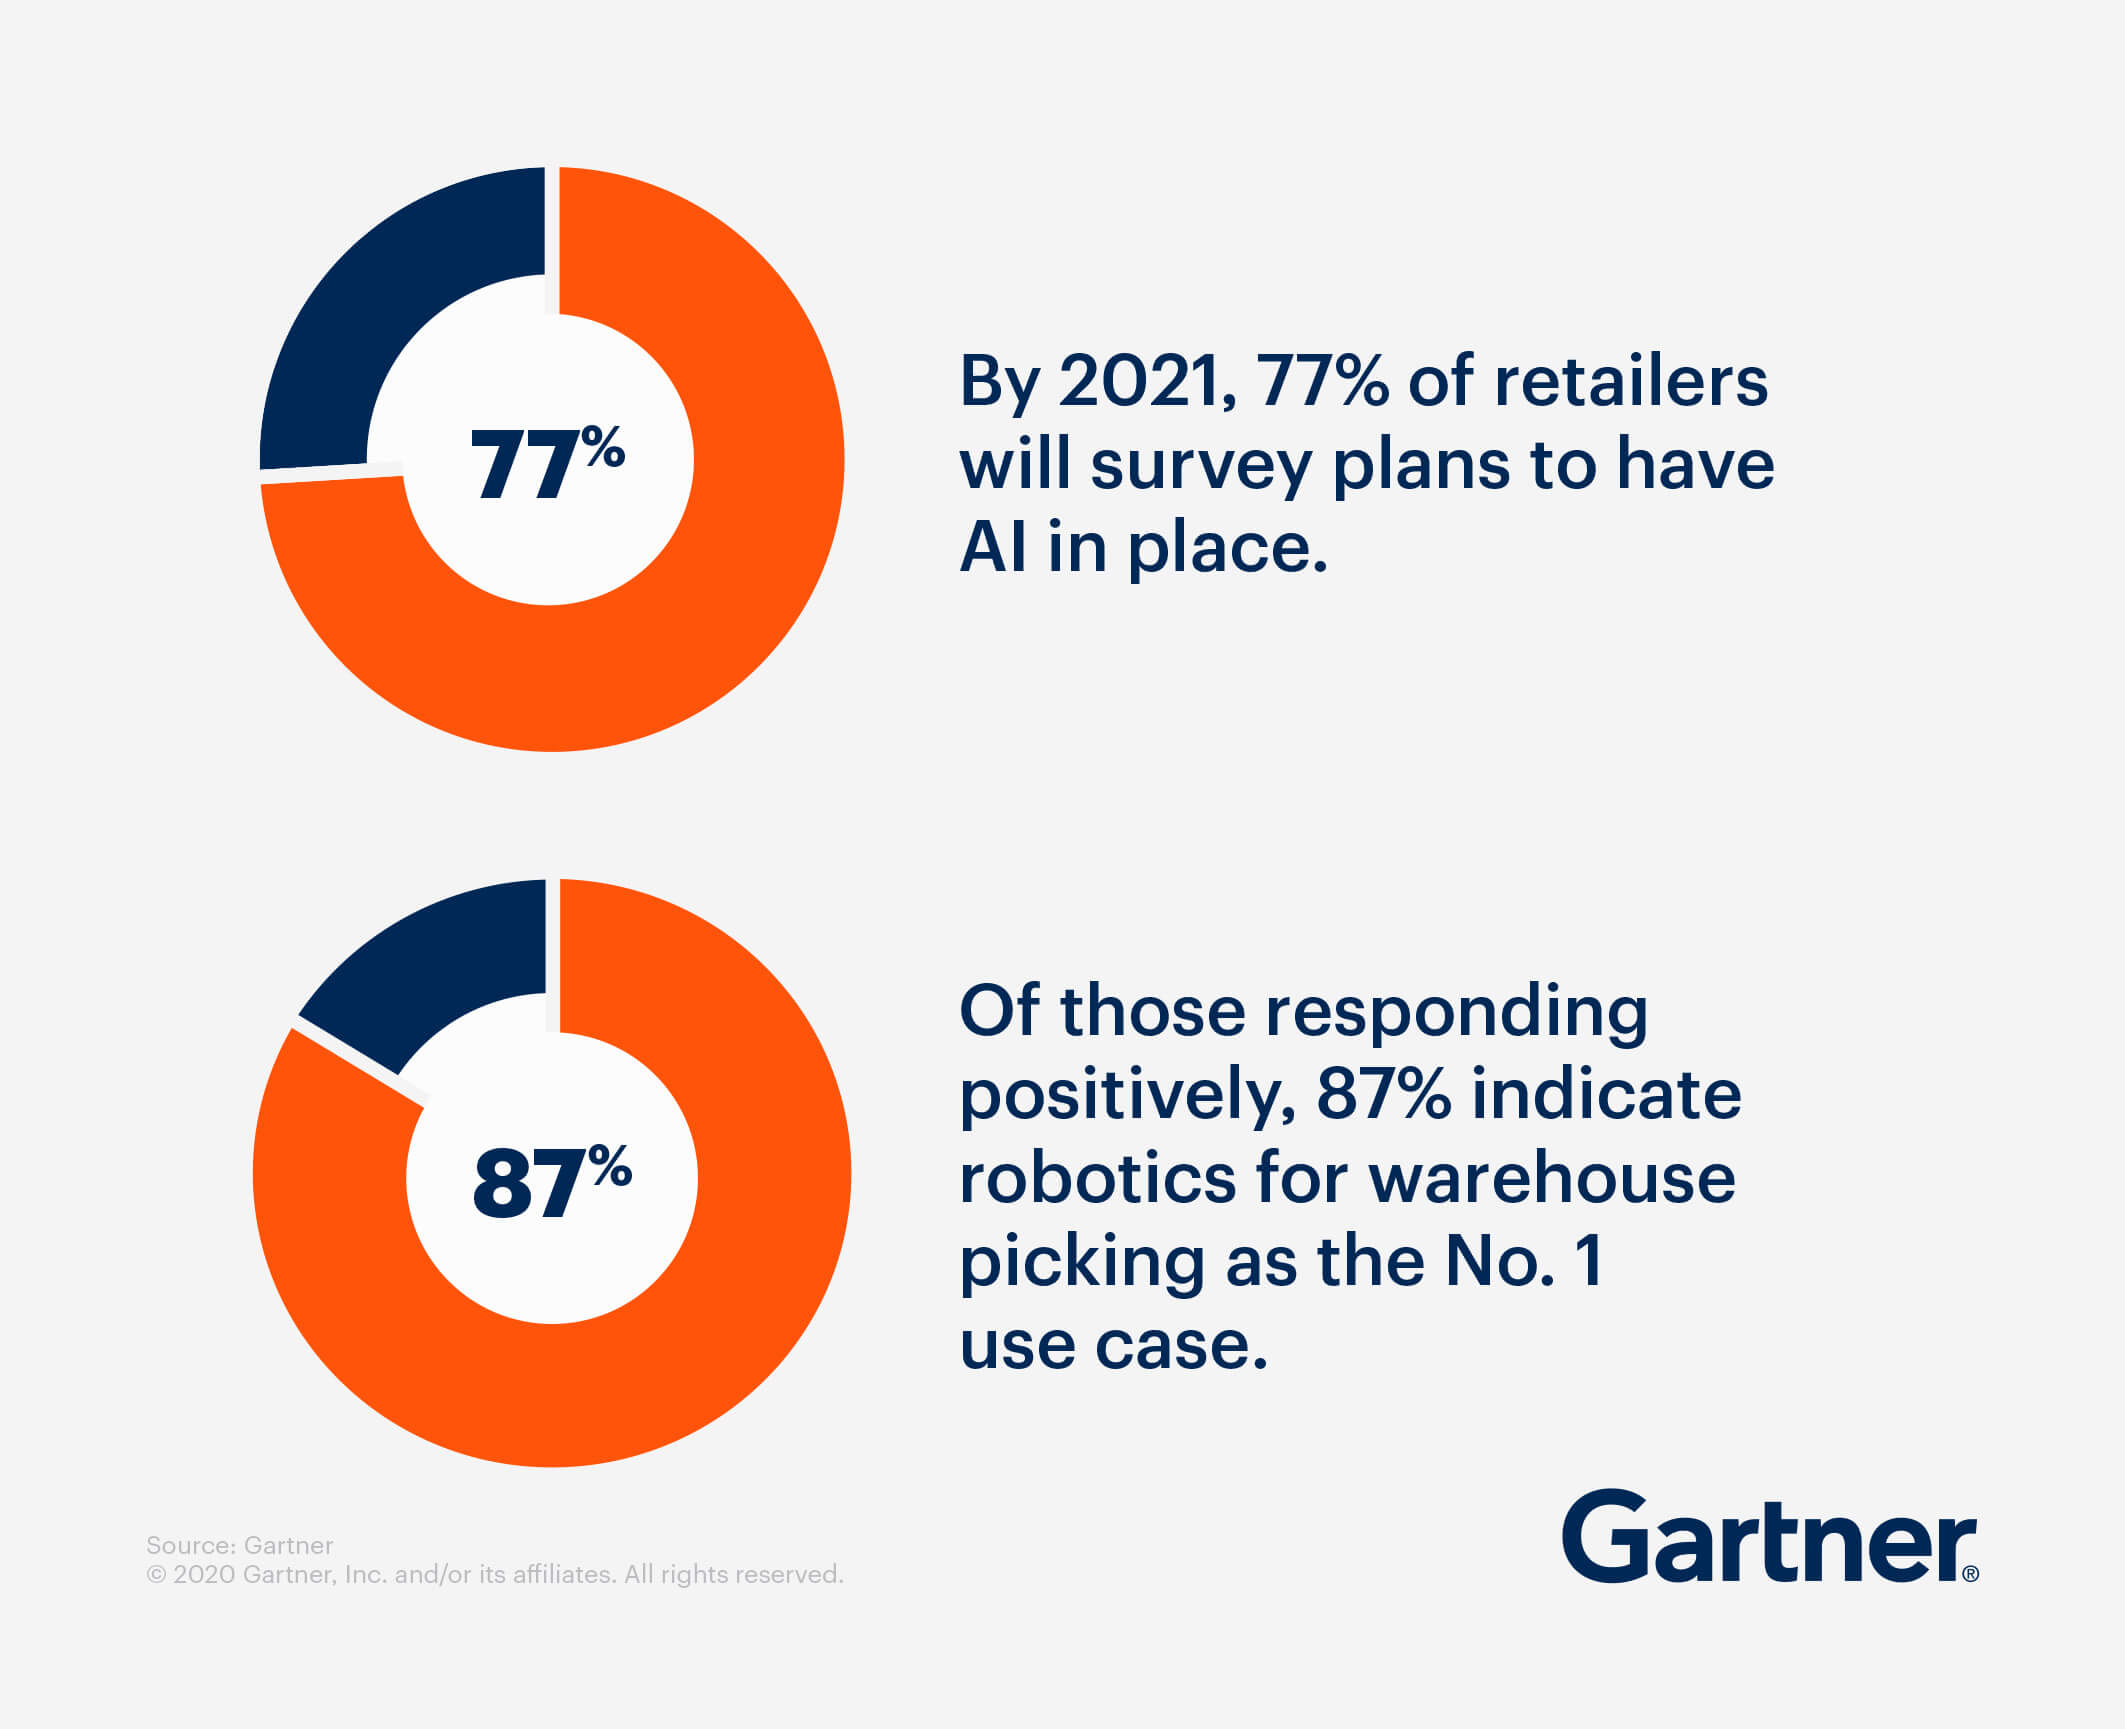 By 2021, 77% of retailers will survey plans to have AI in place. Of those responding positively, 87% indicate robotics for warehouse picking as the No. 1 use case.